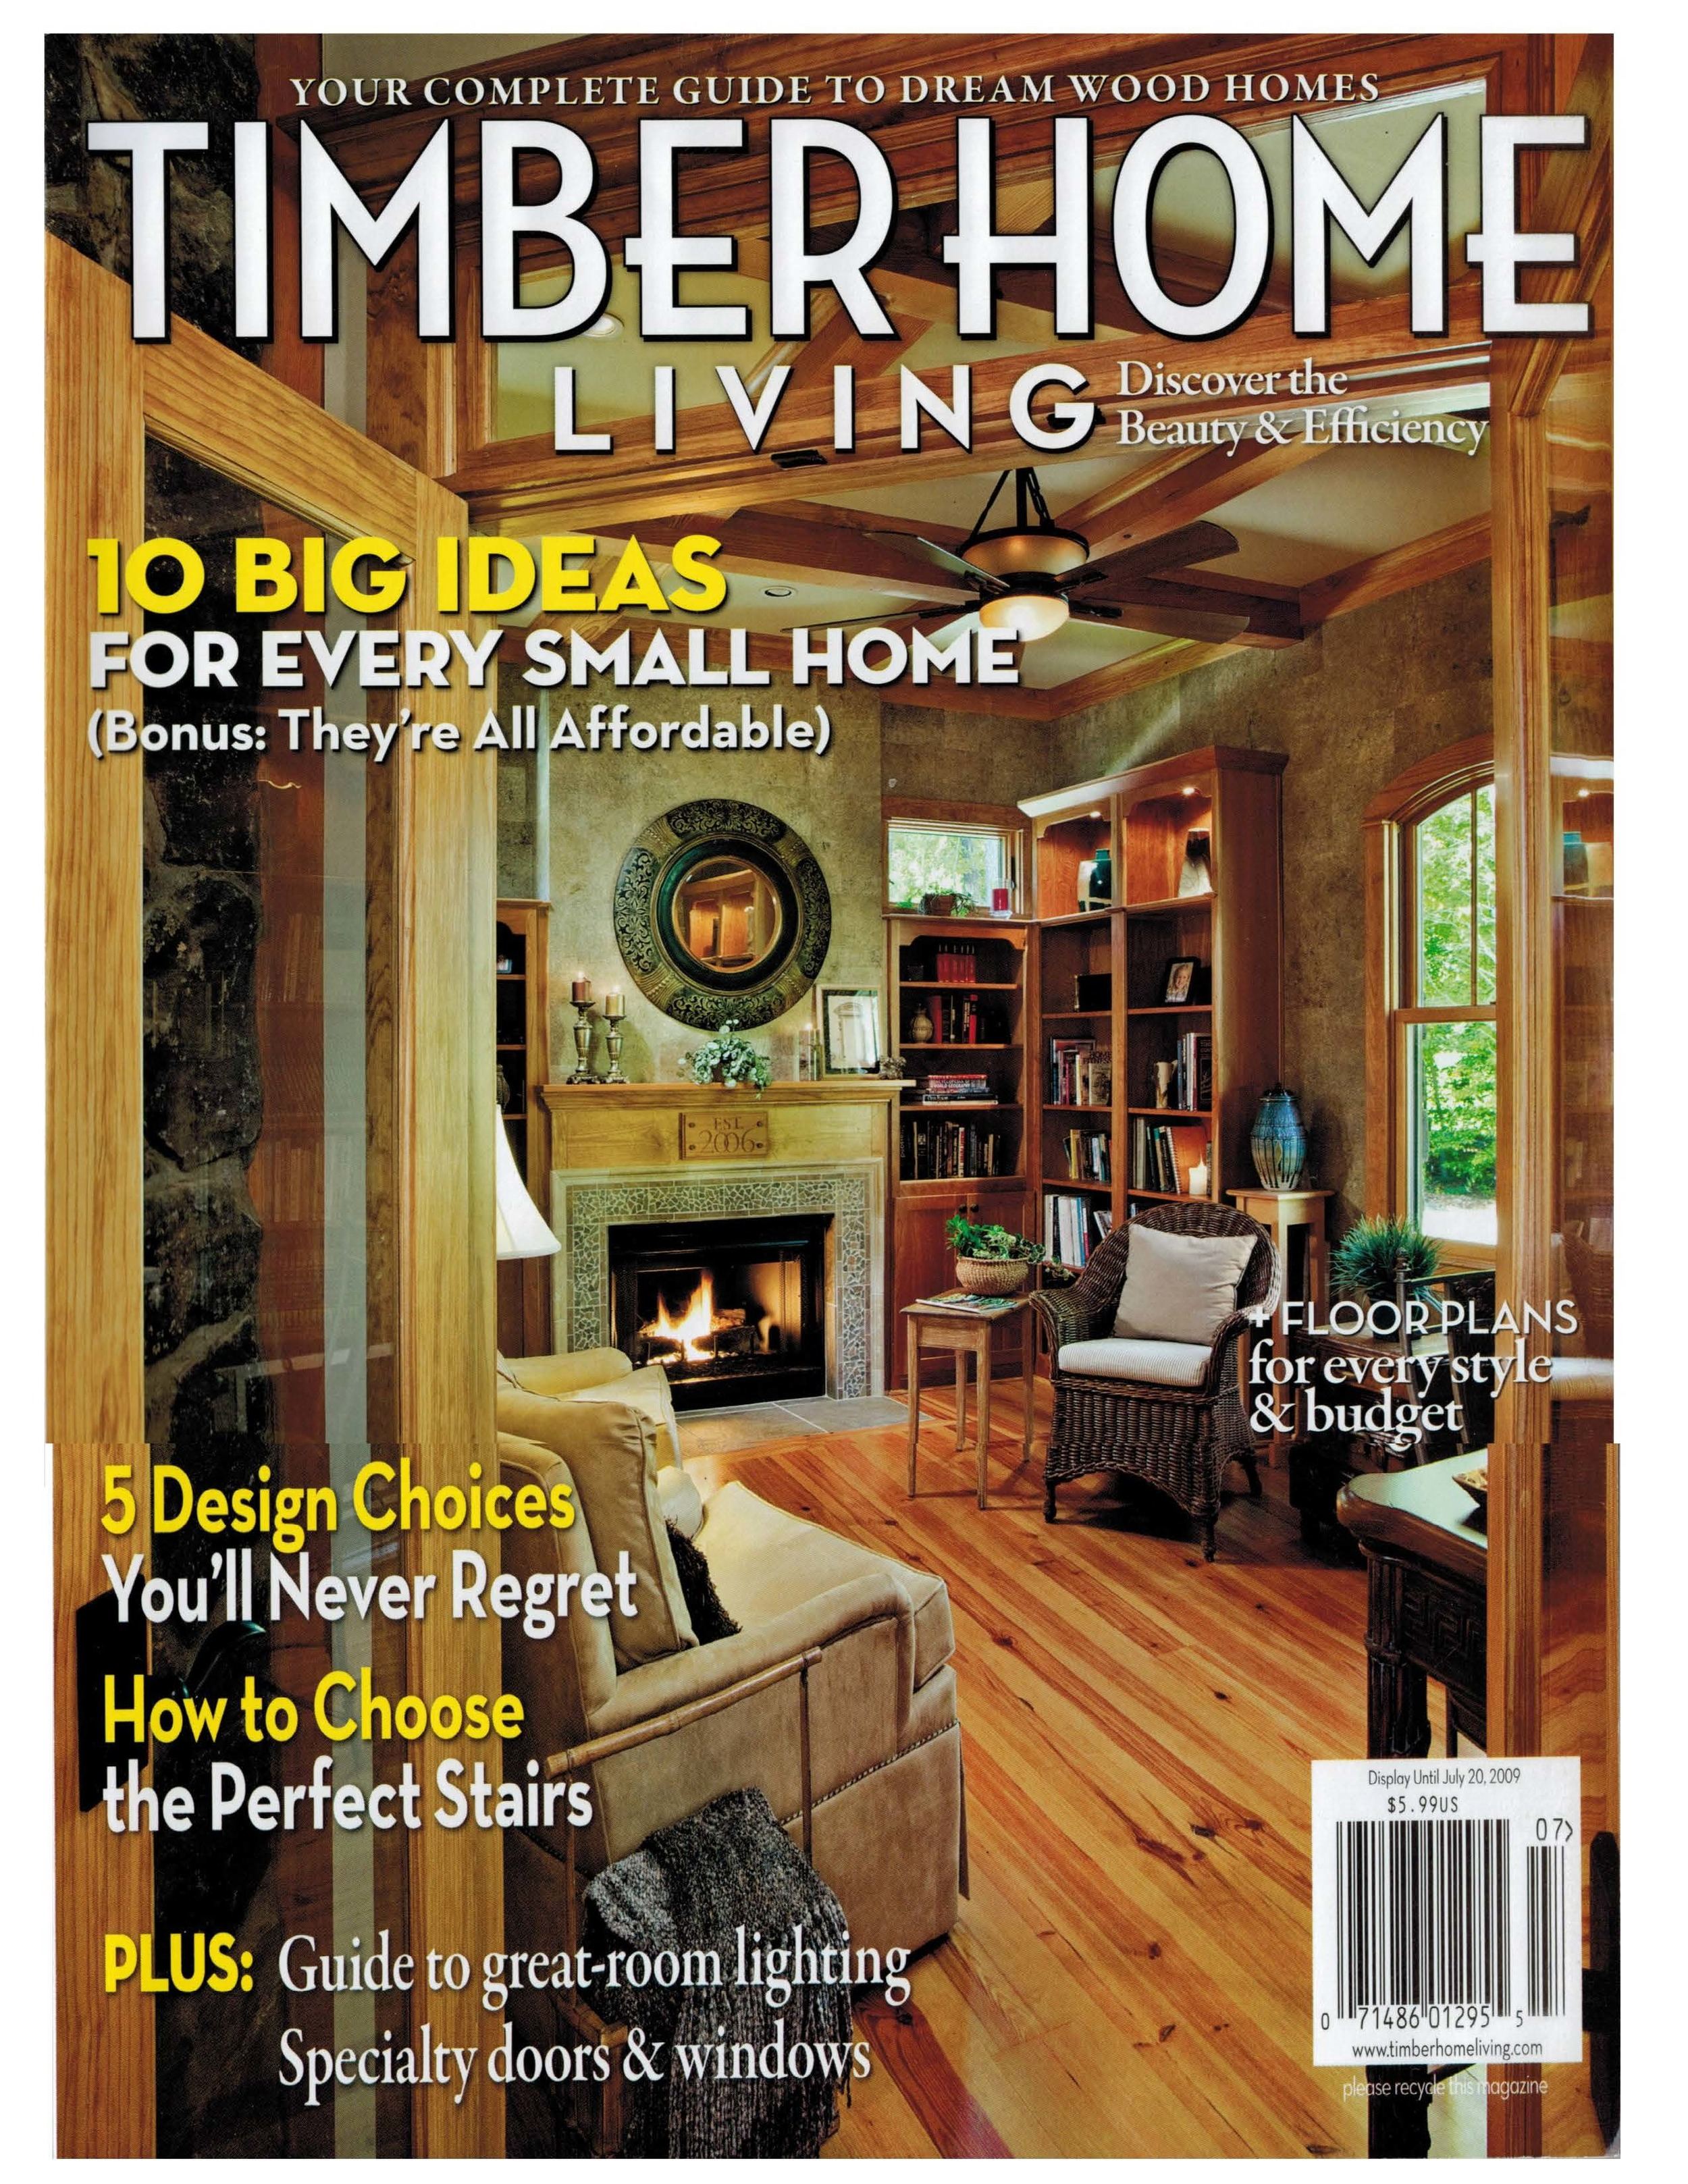 5 Timber Home Living-July 2009.jpg